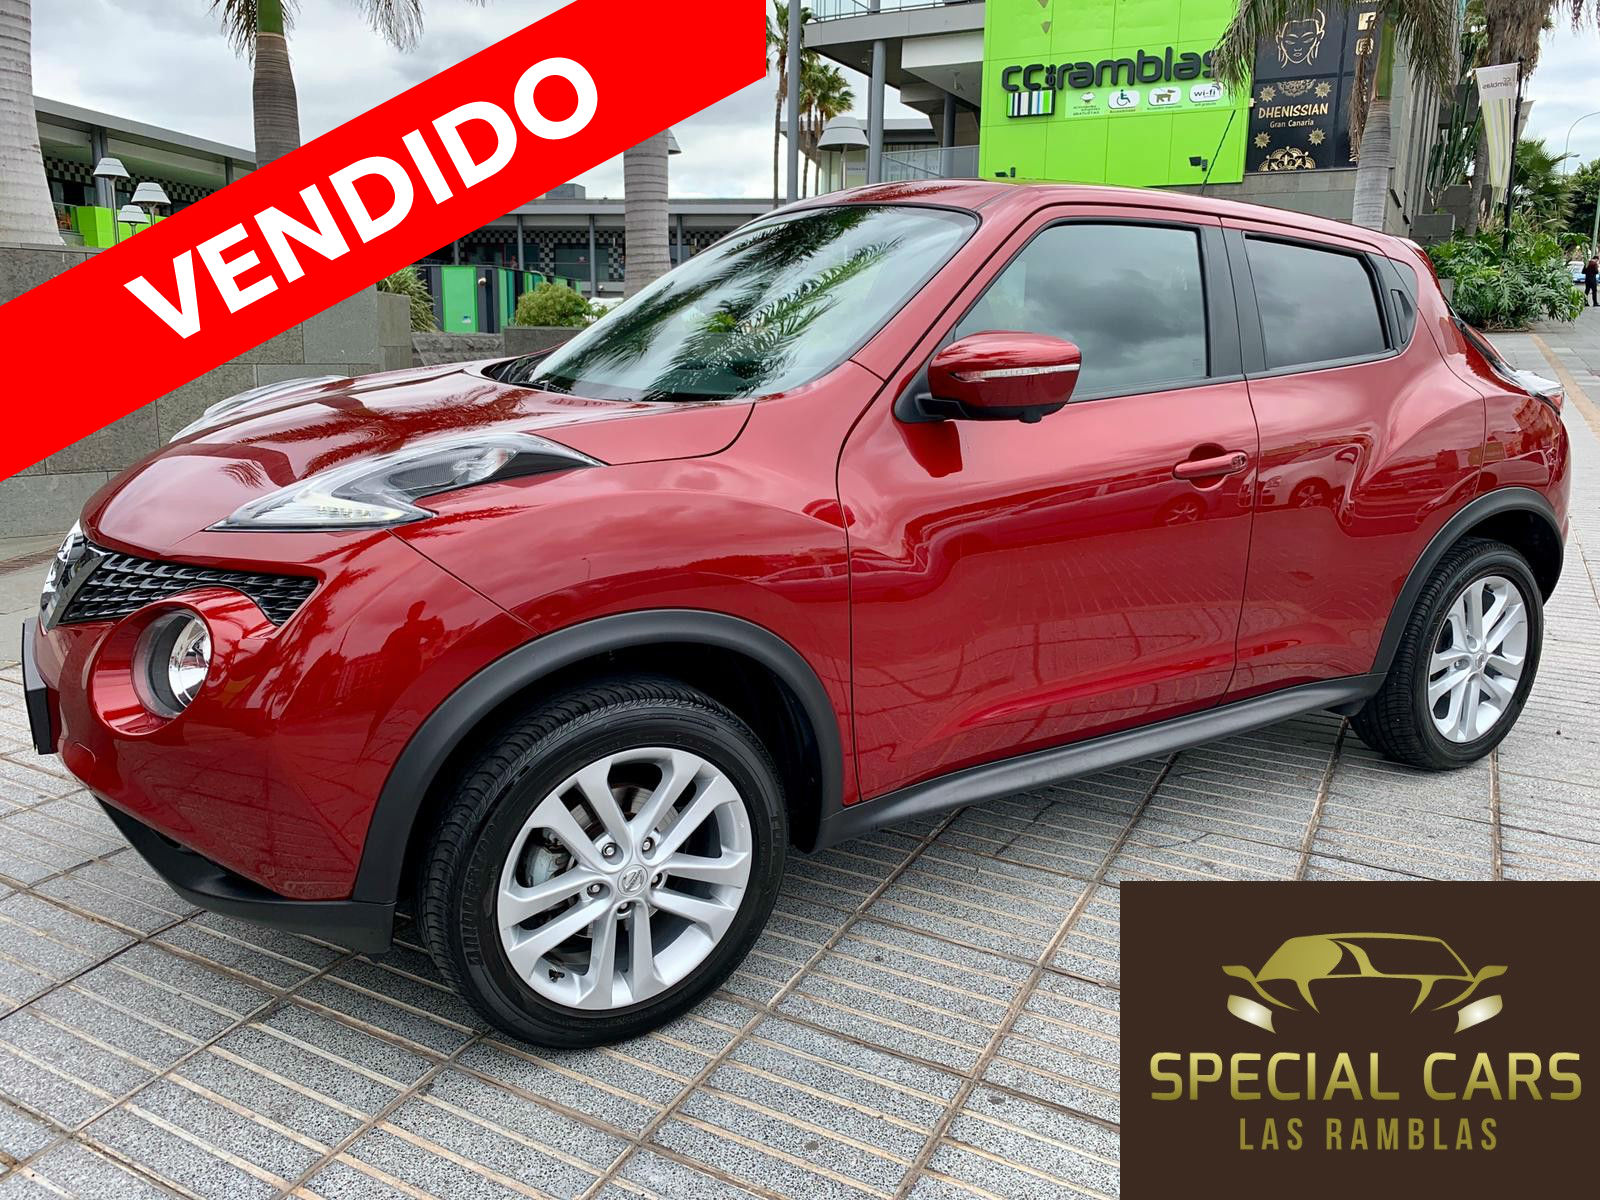 JUKE 1.5 DCI GRANATE MAR19 1 VENDIDOS